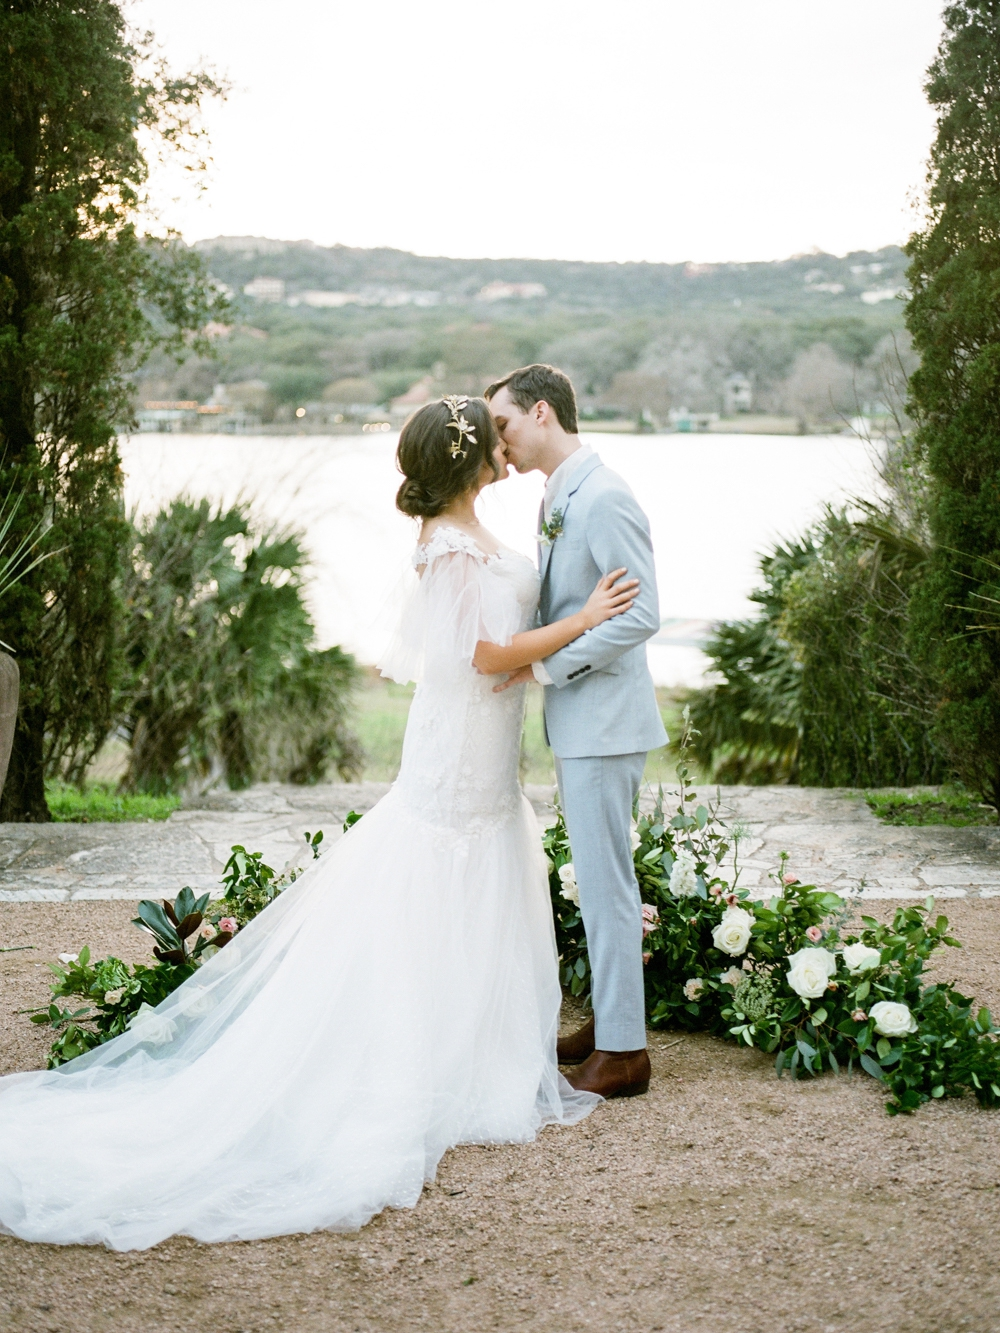 How to Choose a Wedding Planner for Your Destination Wedding